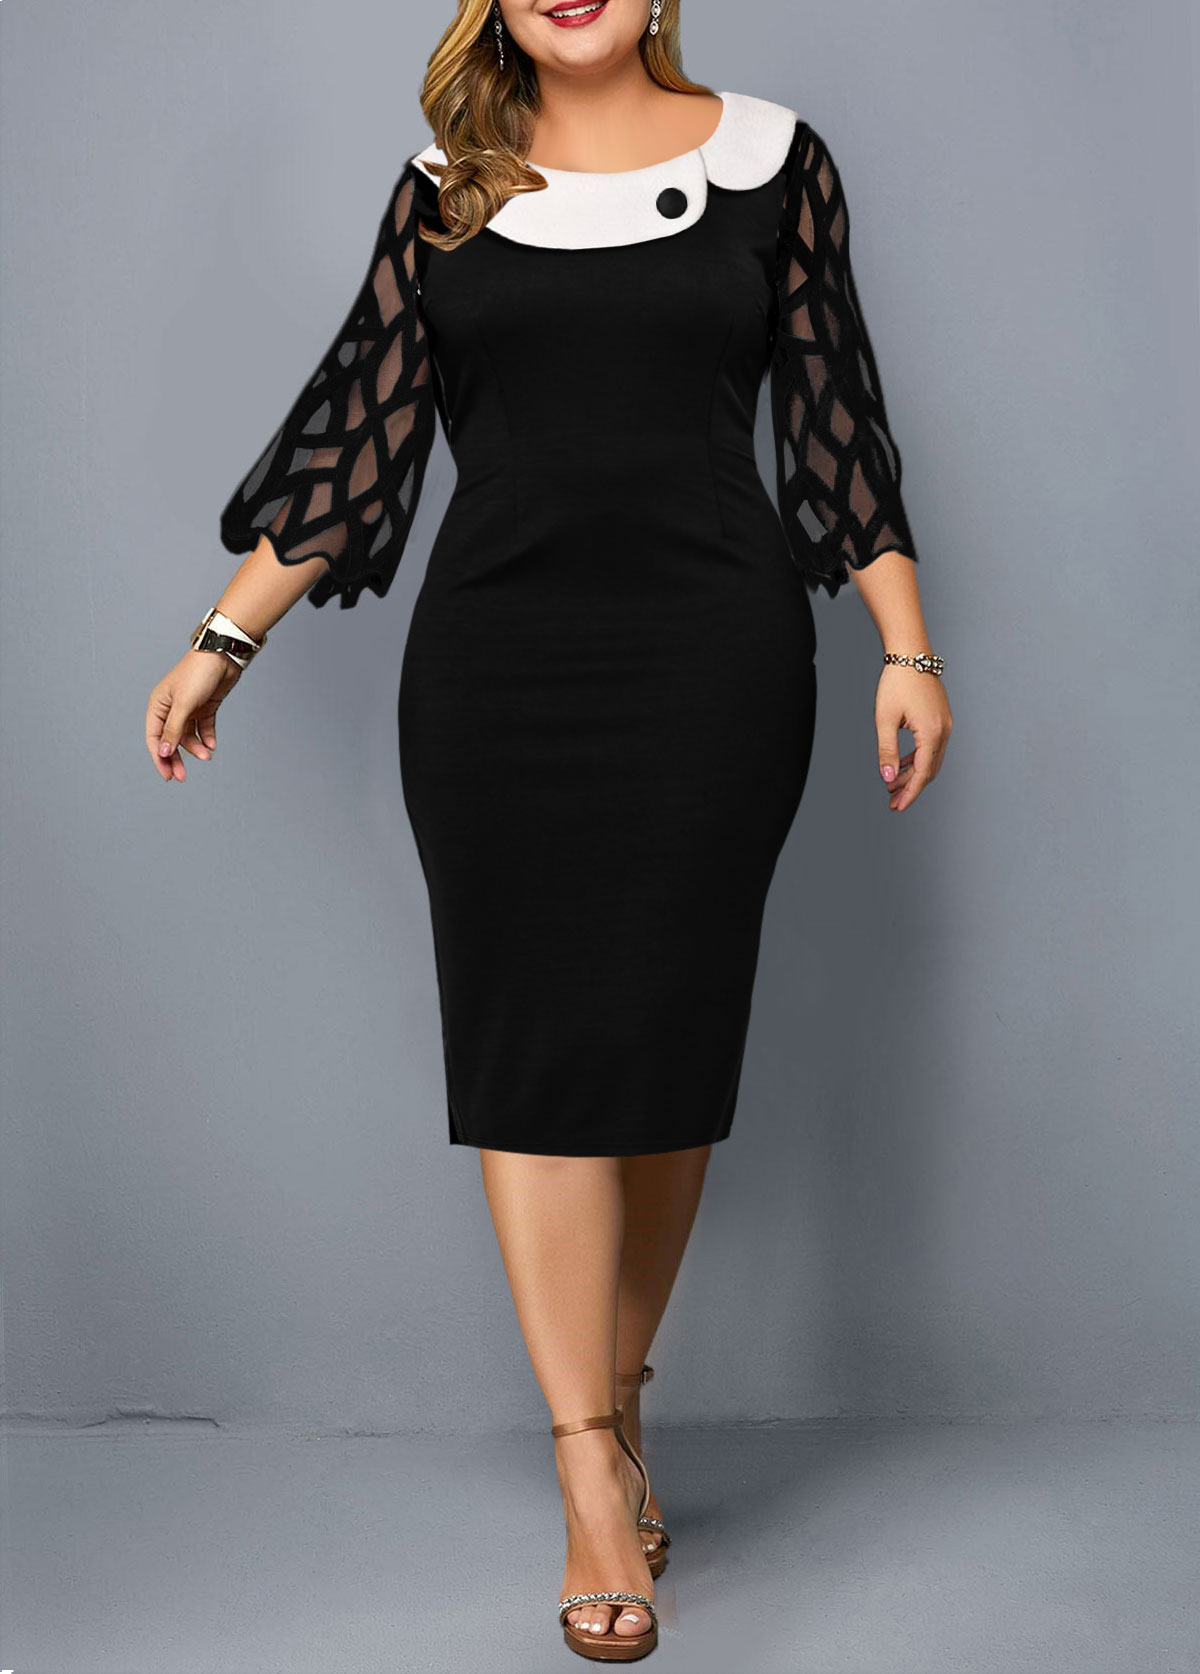 ROTITA Plus Size Mesh Stitching Contrast Dress